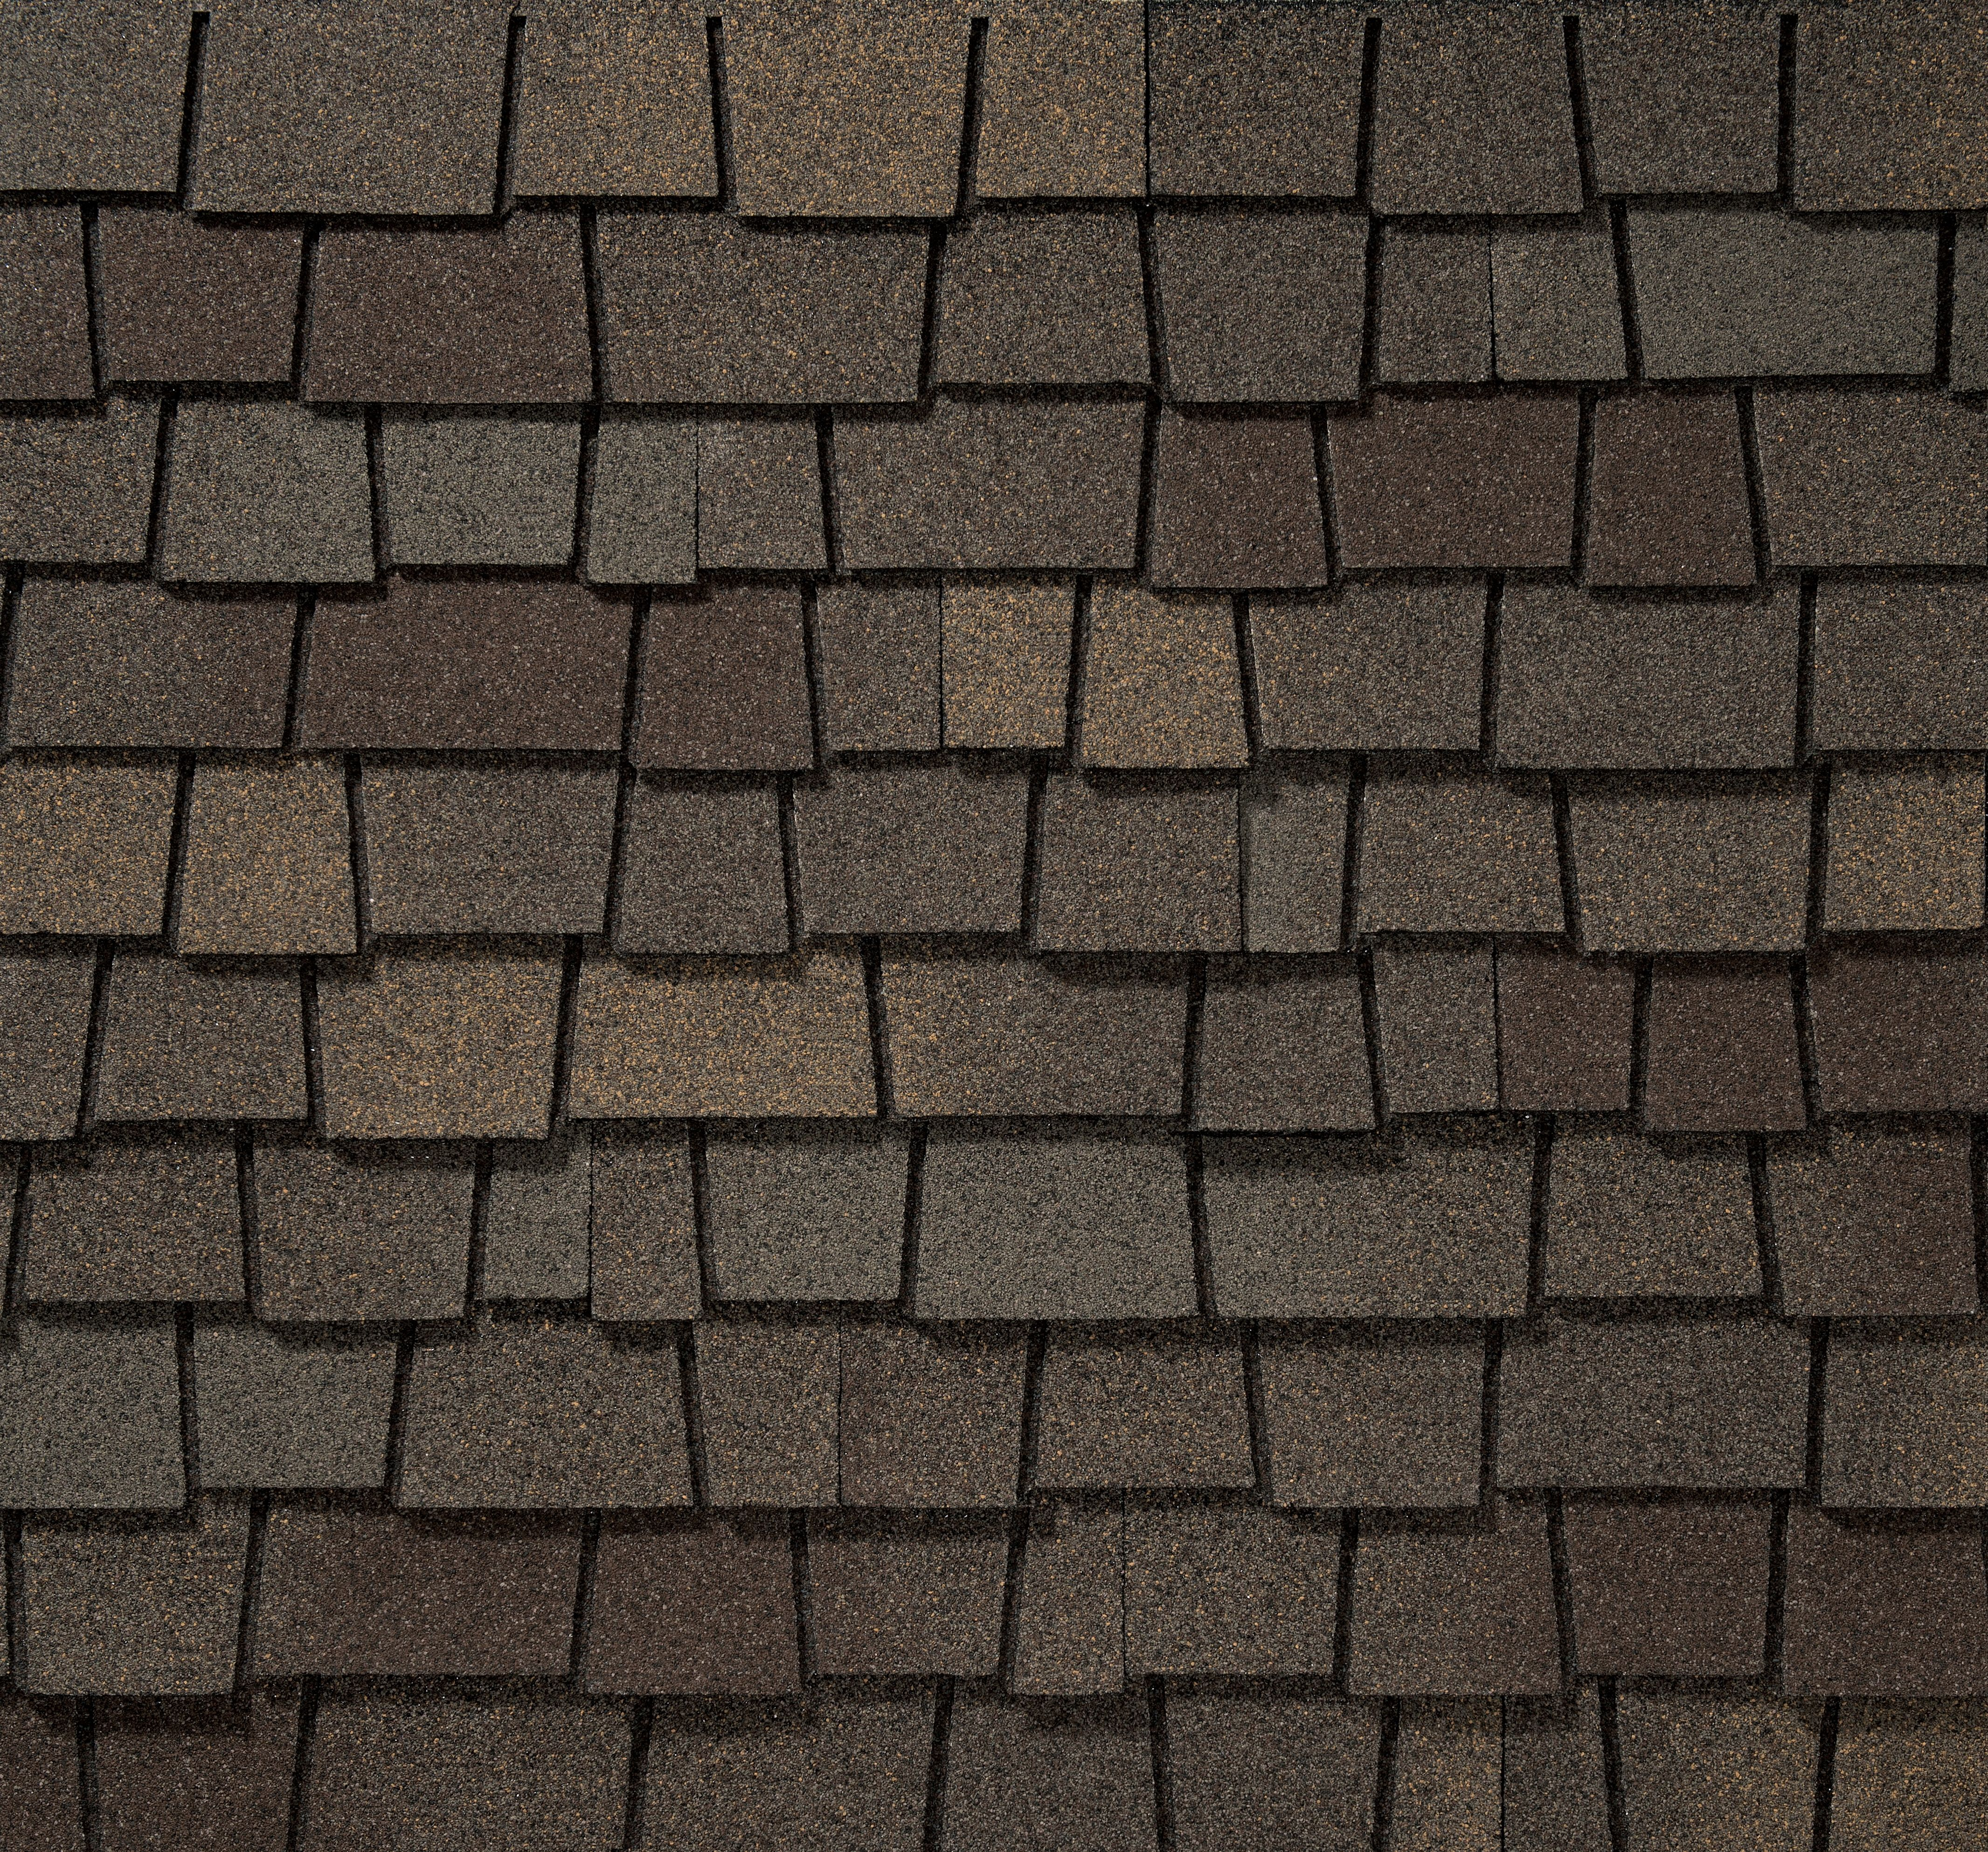 Best Glenwood Autumn Harvest Architectural Shingles Roof 400 x 300